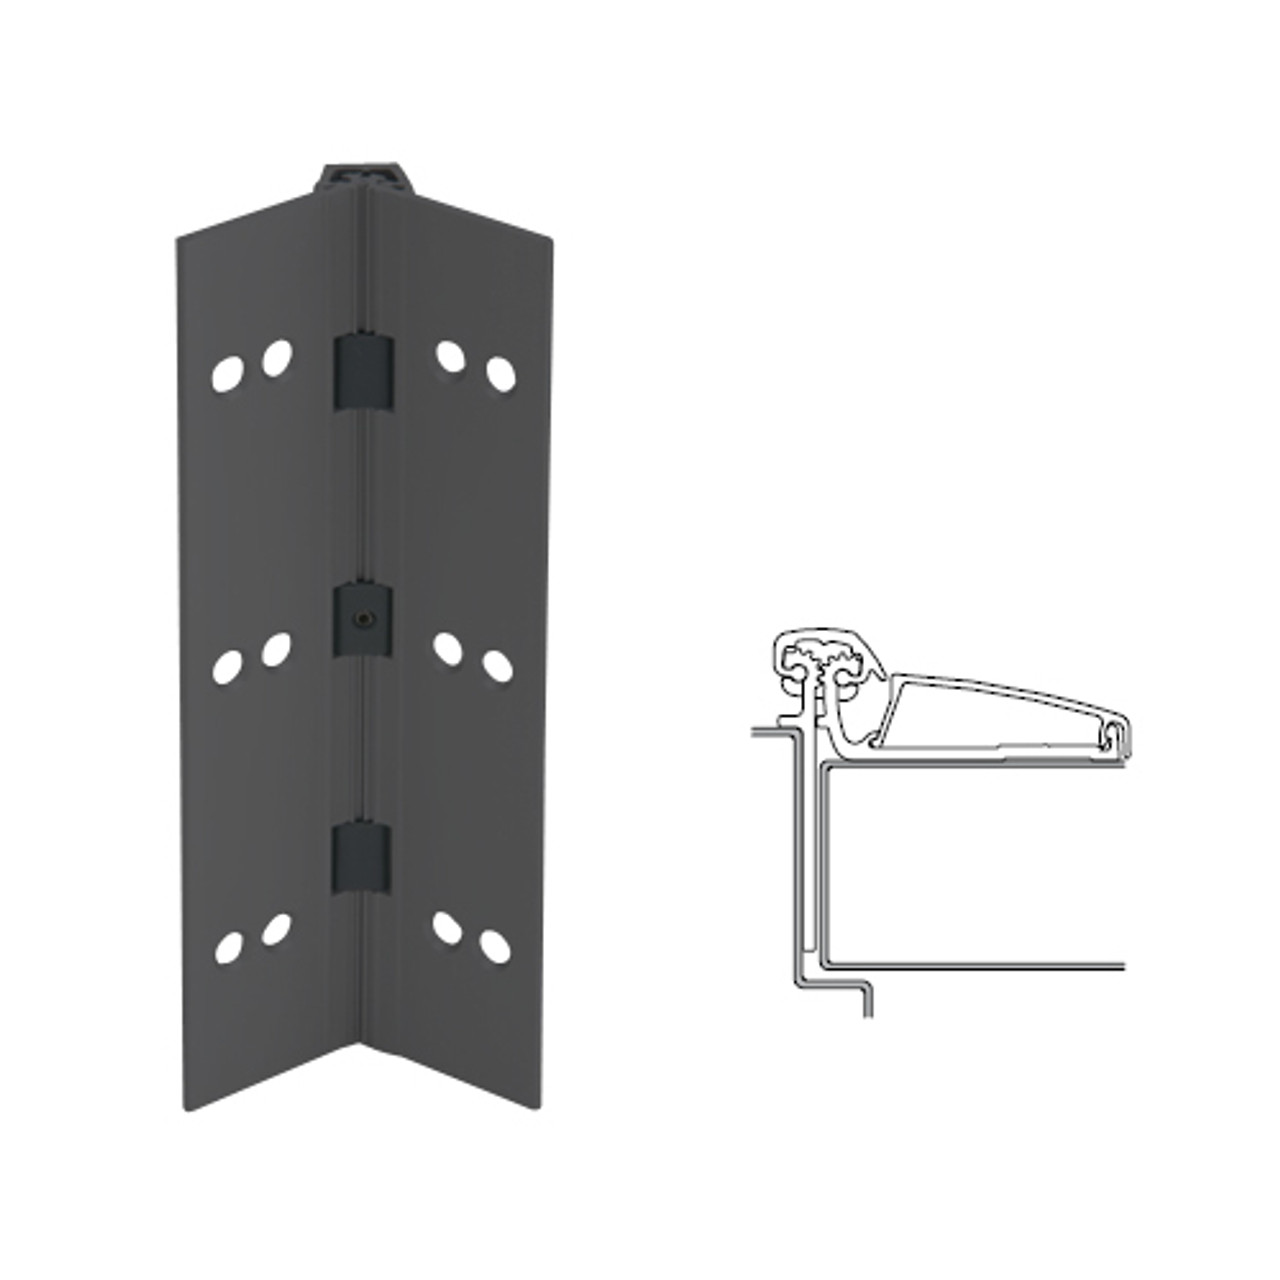 046XY-315AN-120-TEKWD IVES Adjustable Half Surface Continuous Geared Hinges with Wood Screws in Anodized Black